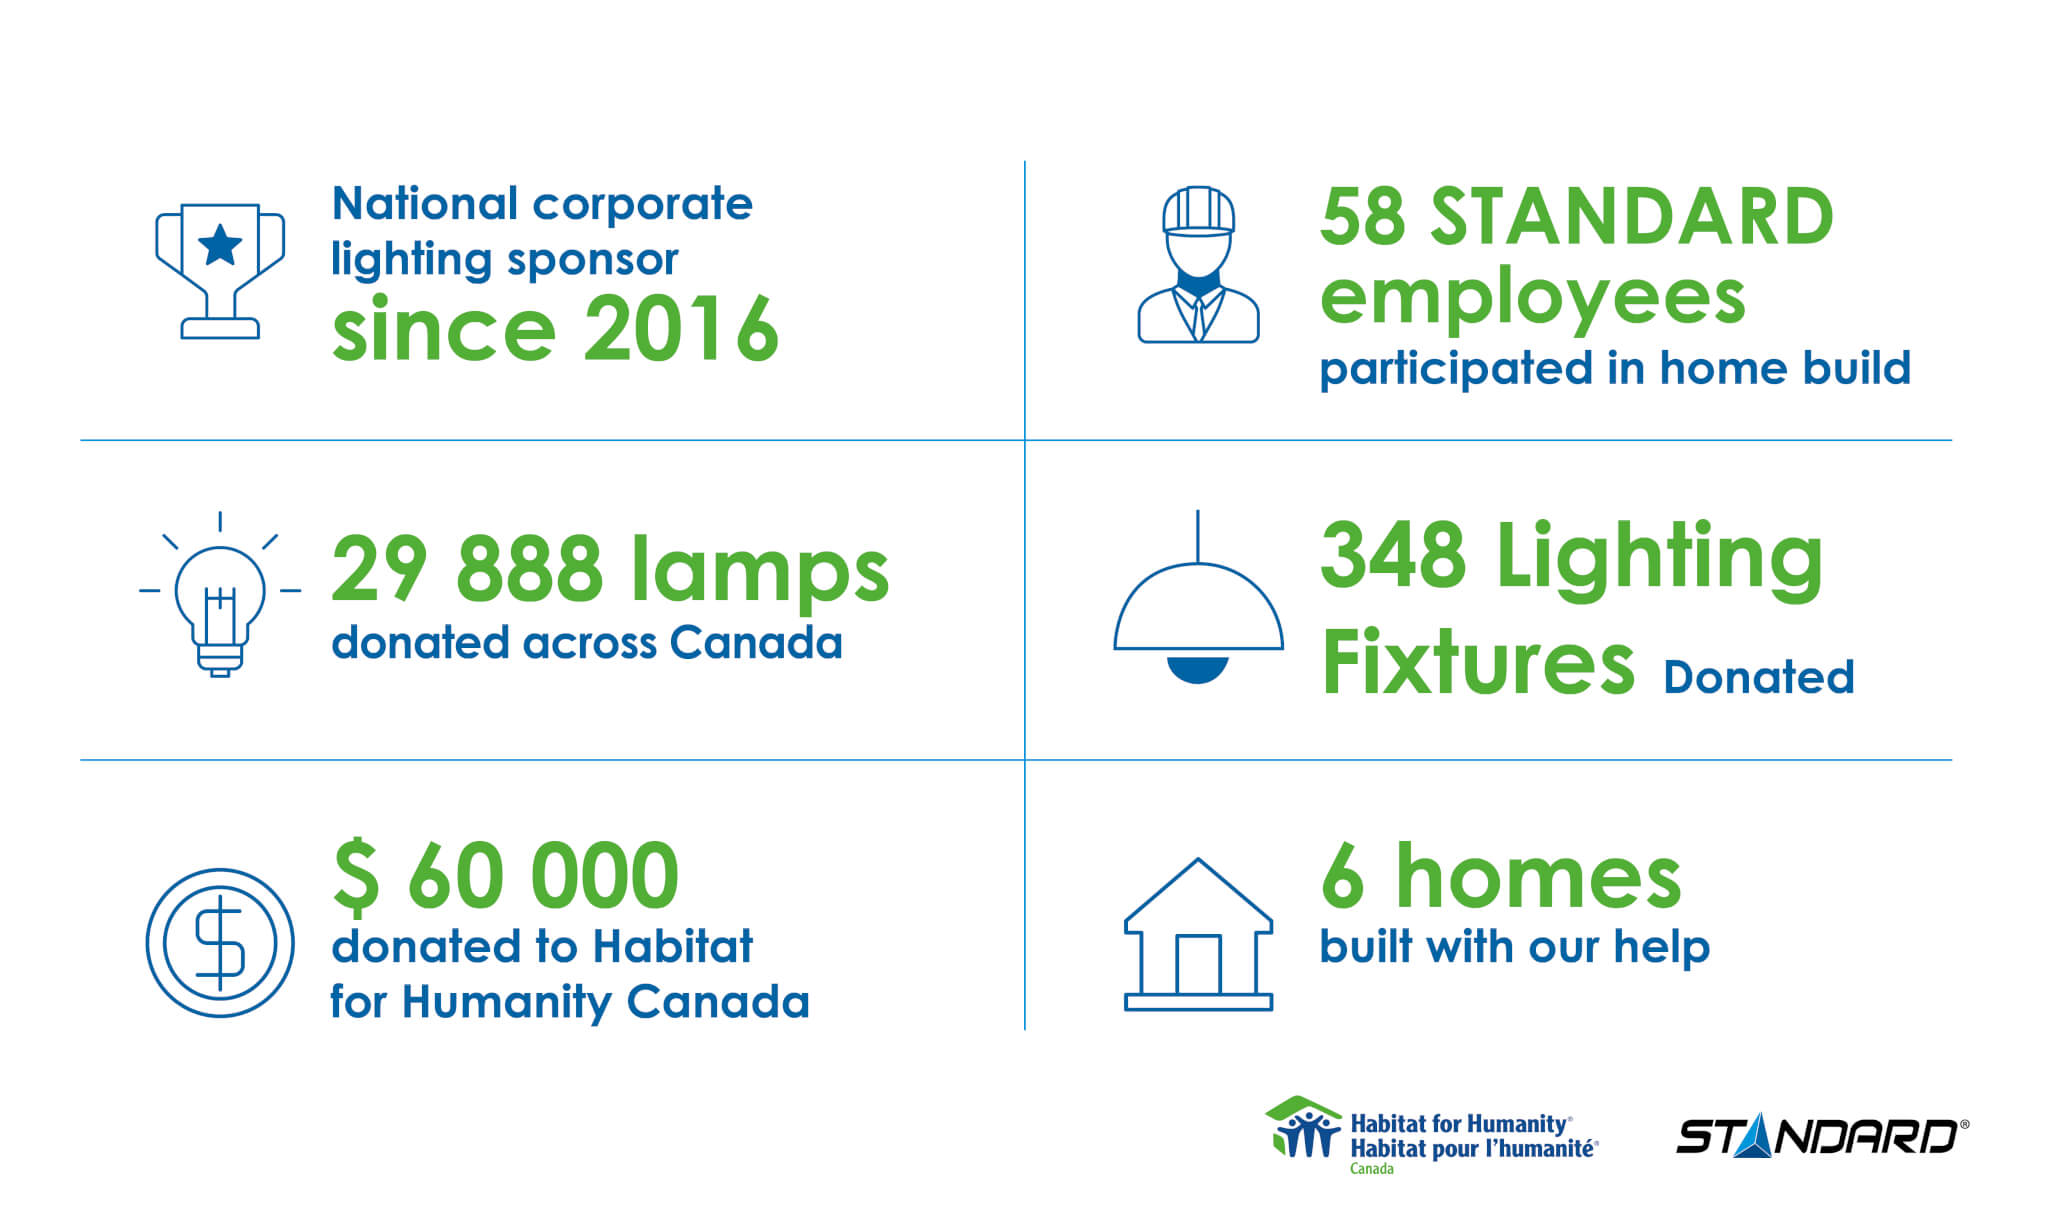 Habitat for humanity Canada and Standard